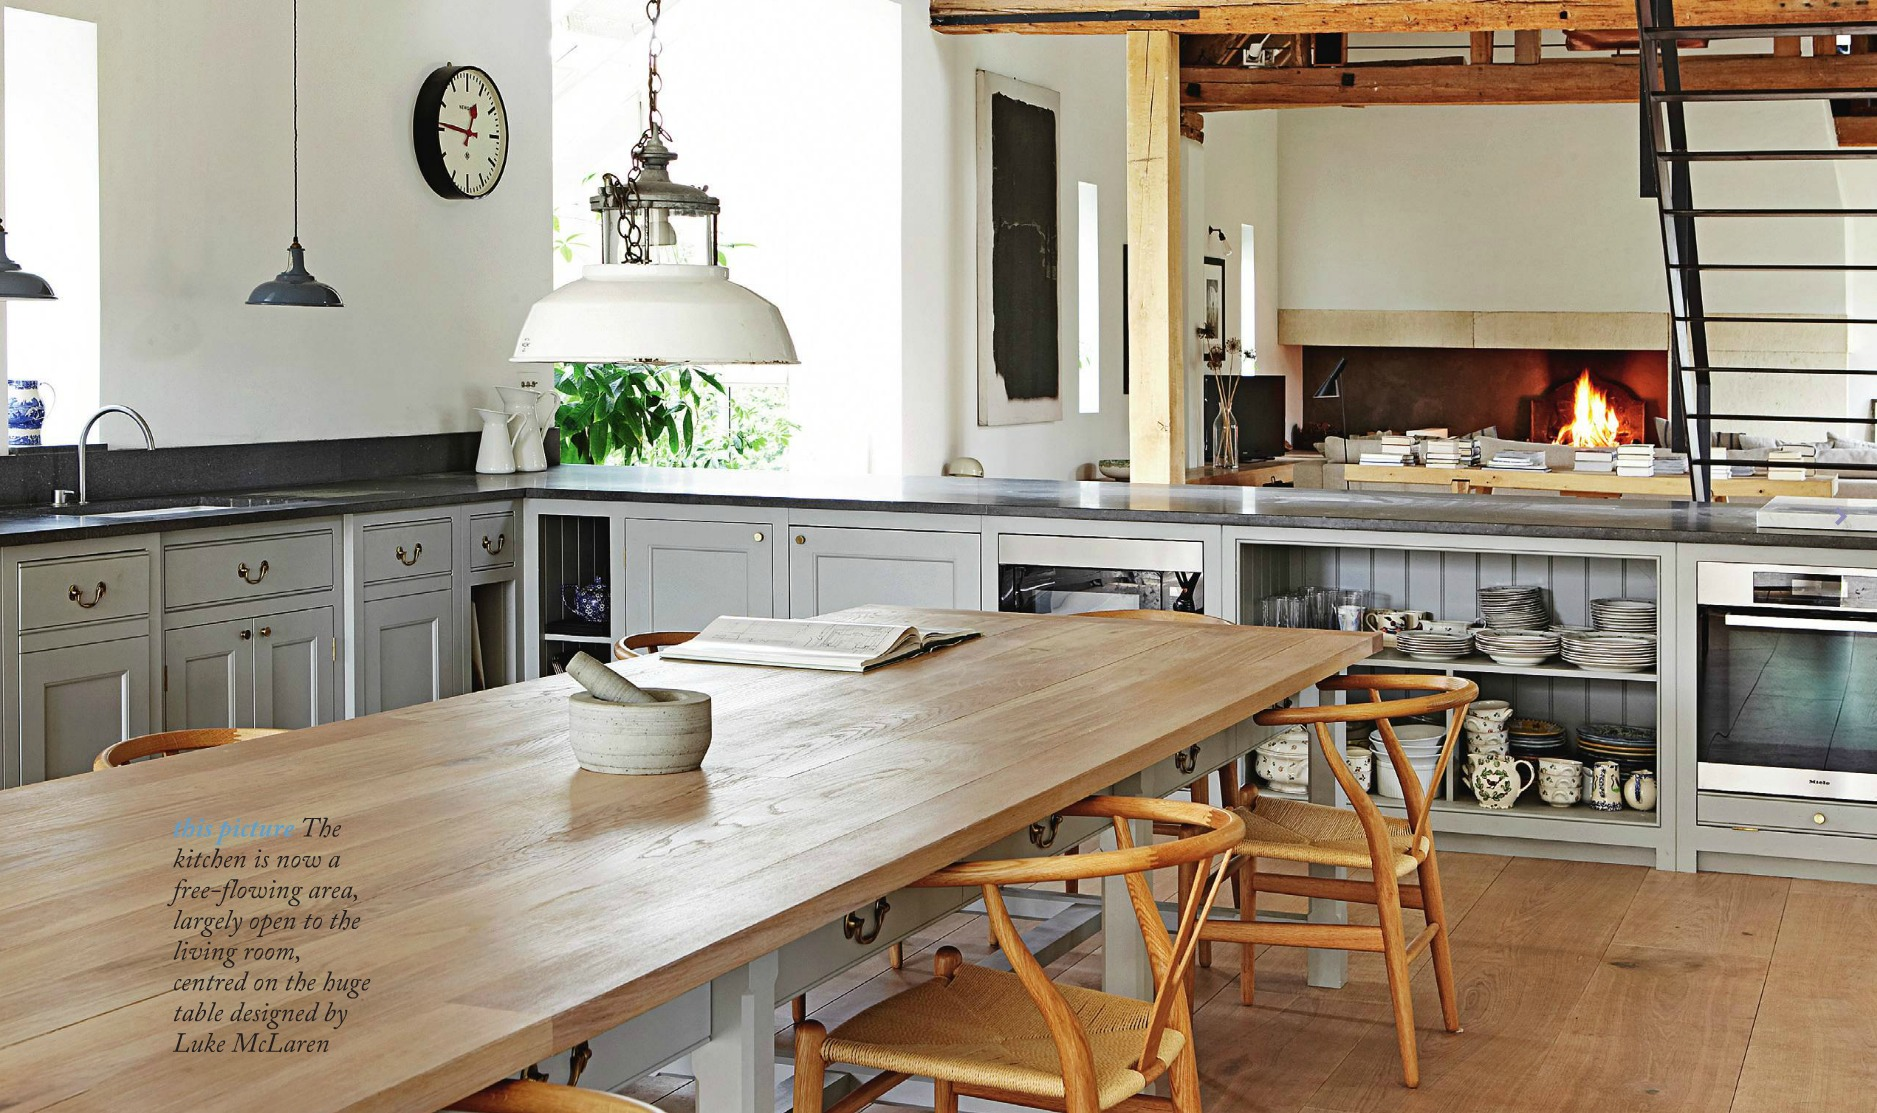 kitchen pendant lights over the table and work surfaces